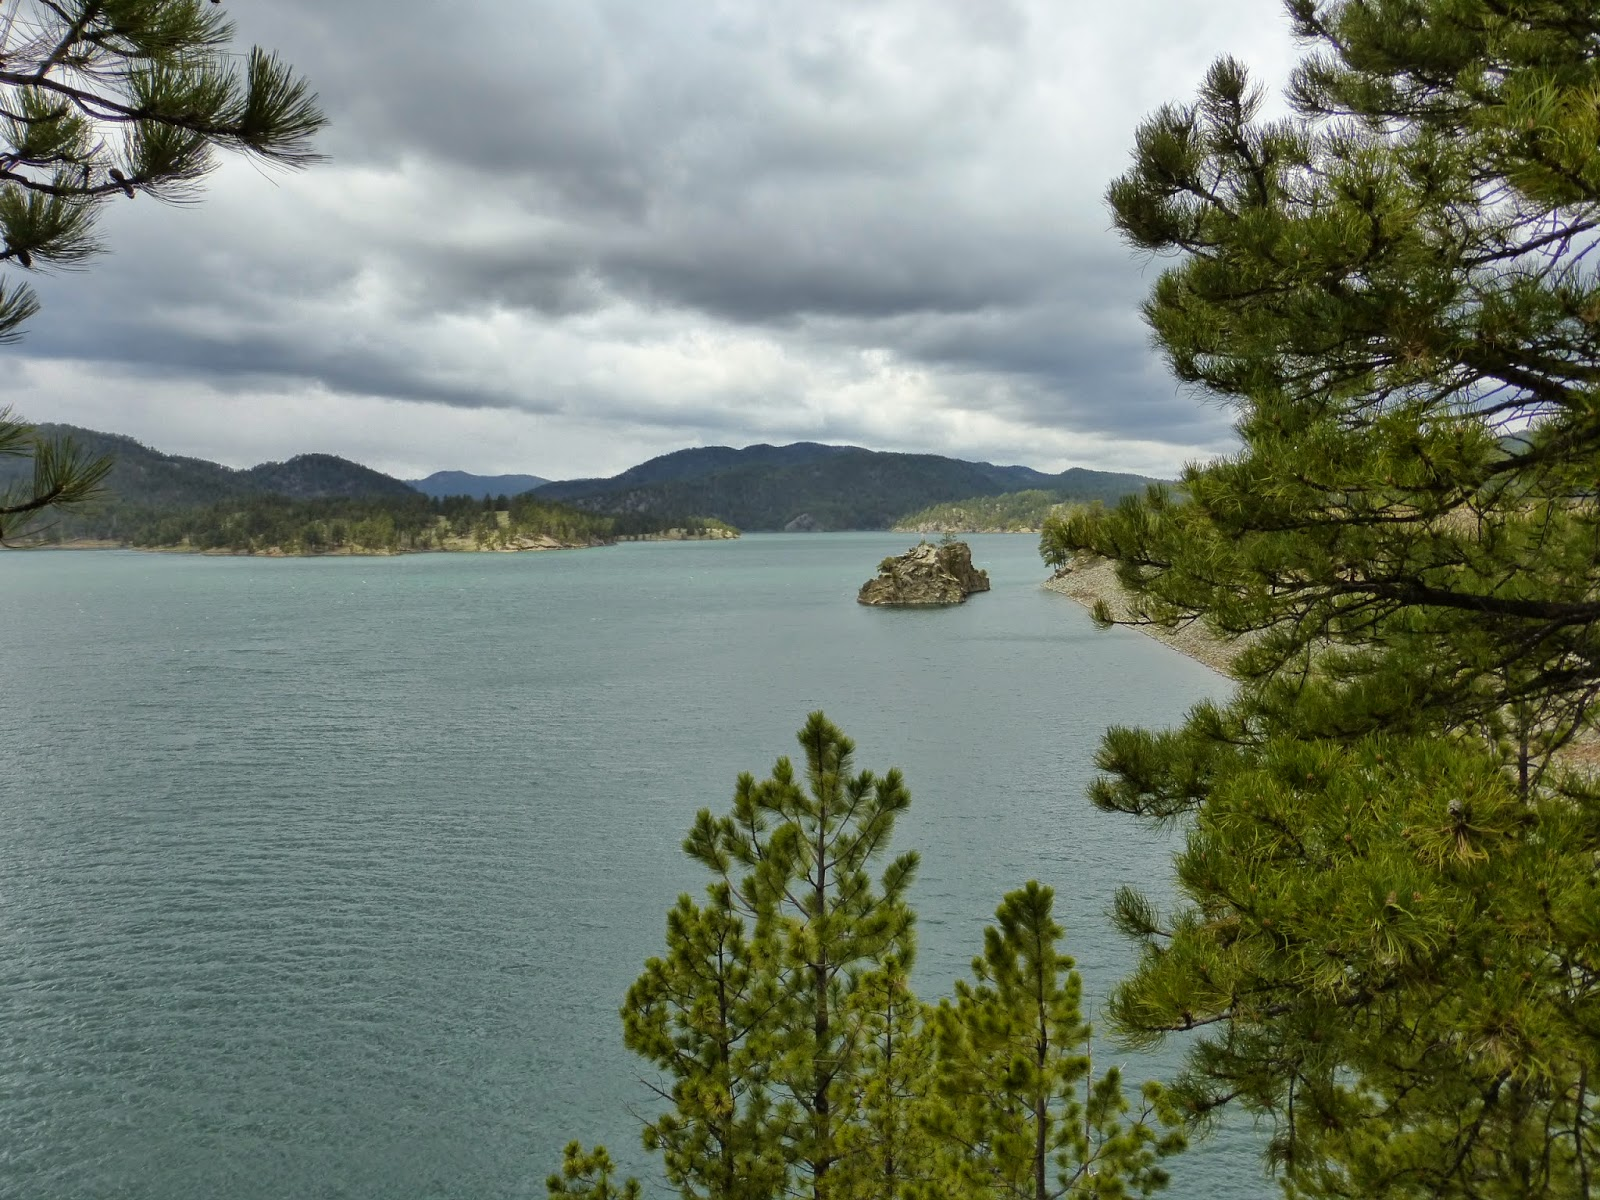 Perk 39 s posts black hills sturgis sd devils tower may 16 for Pactola lake cabins